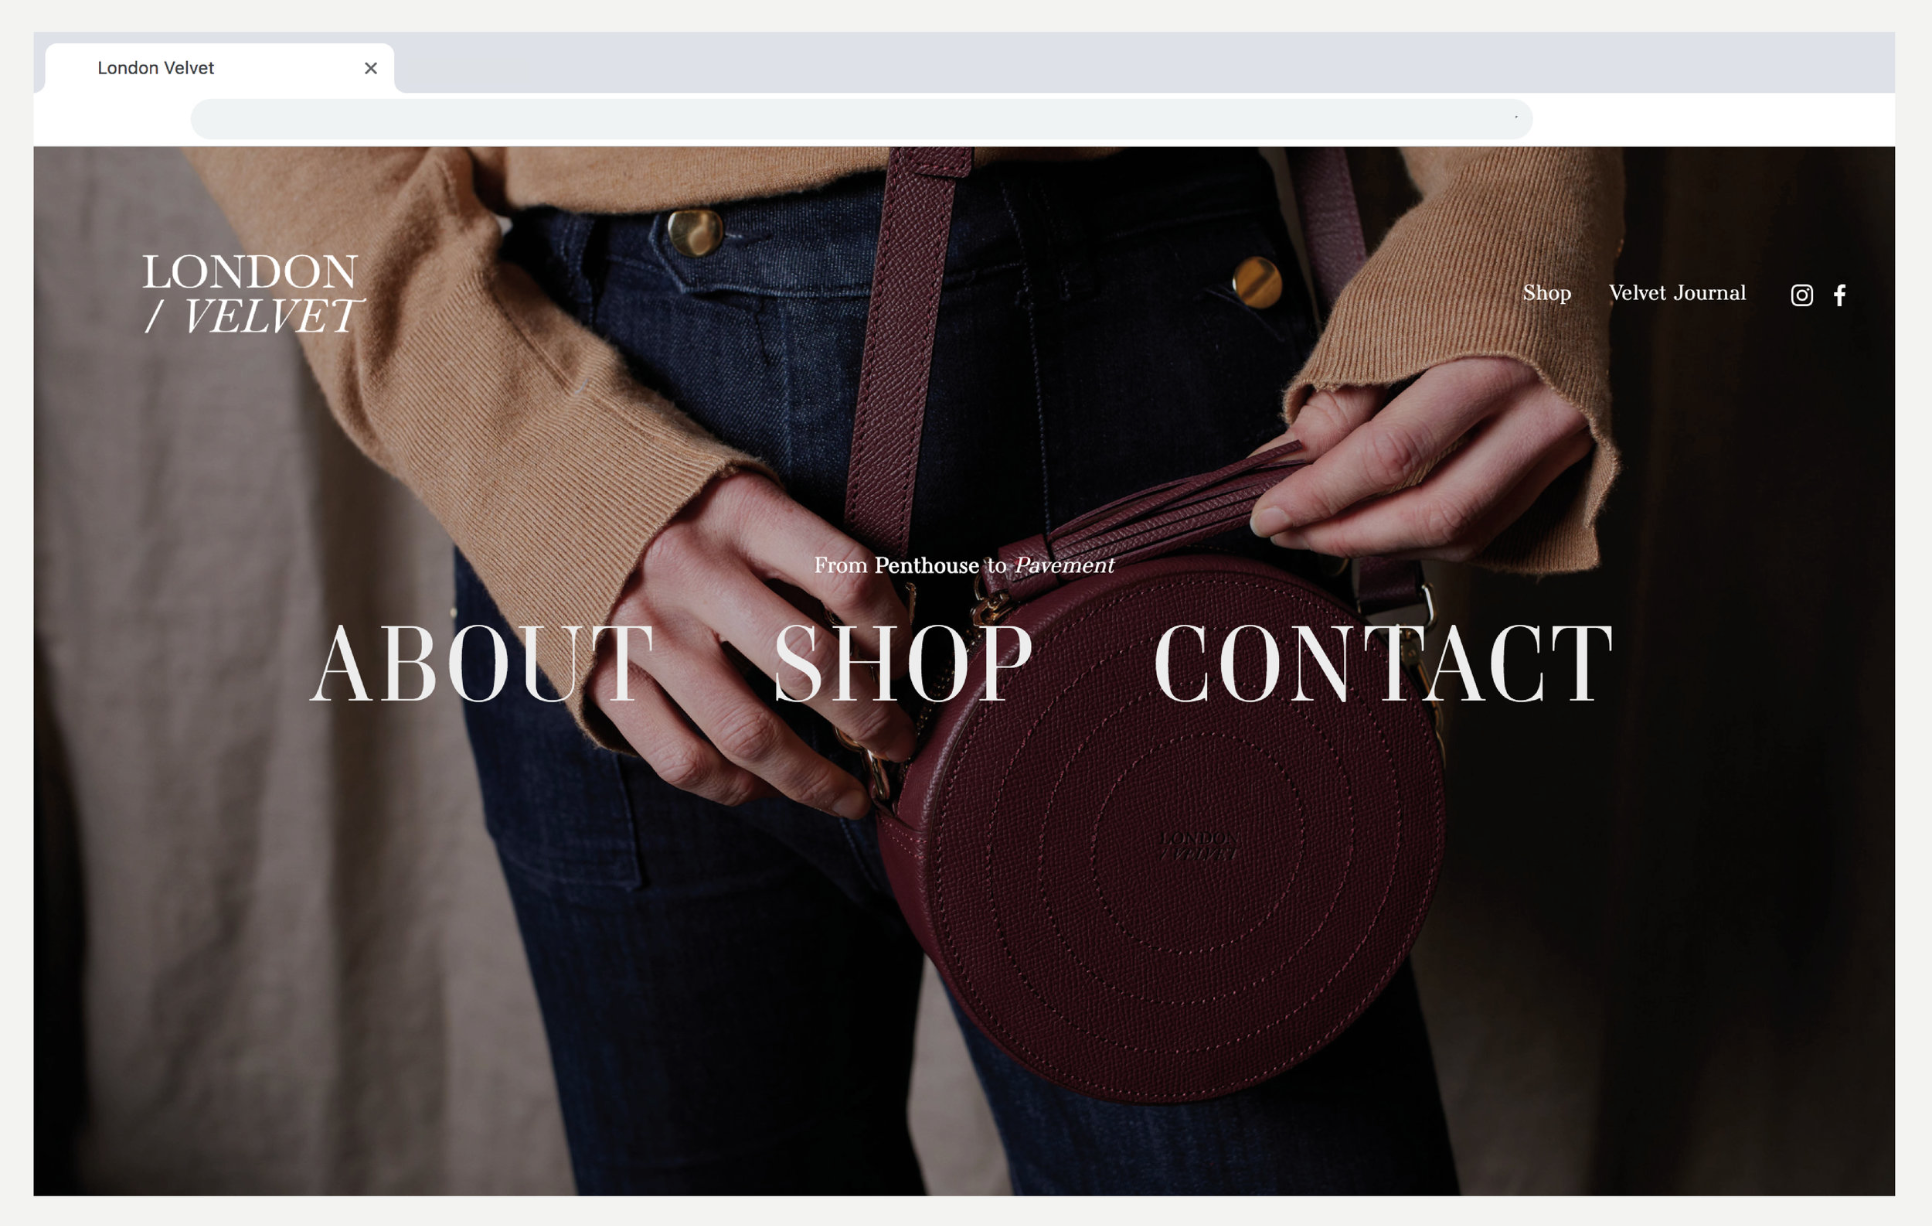 LV Website